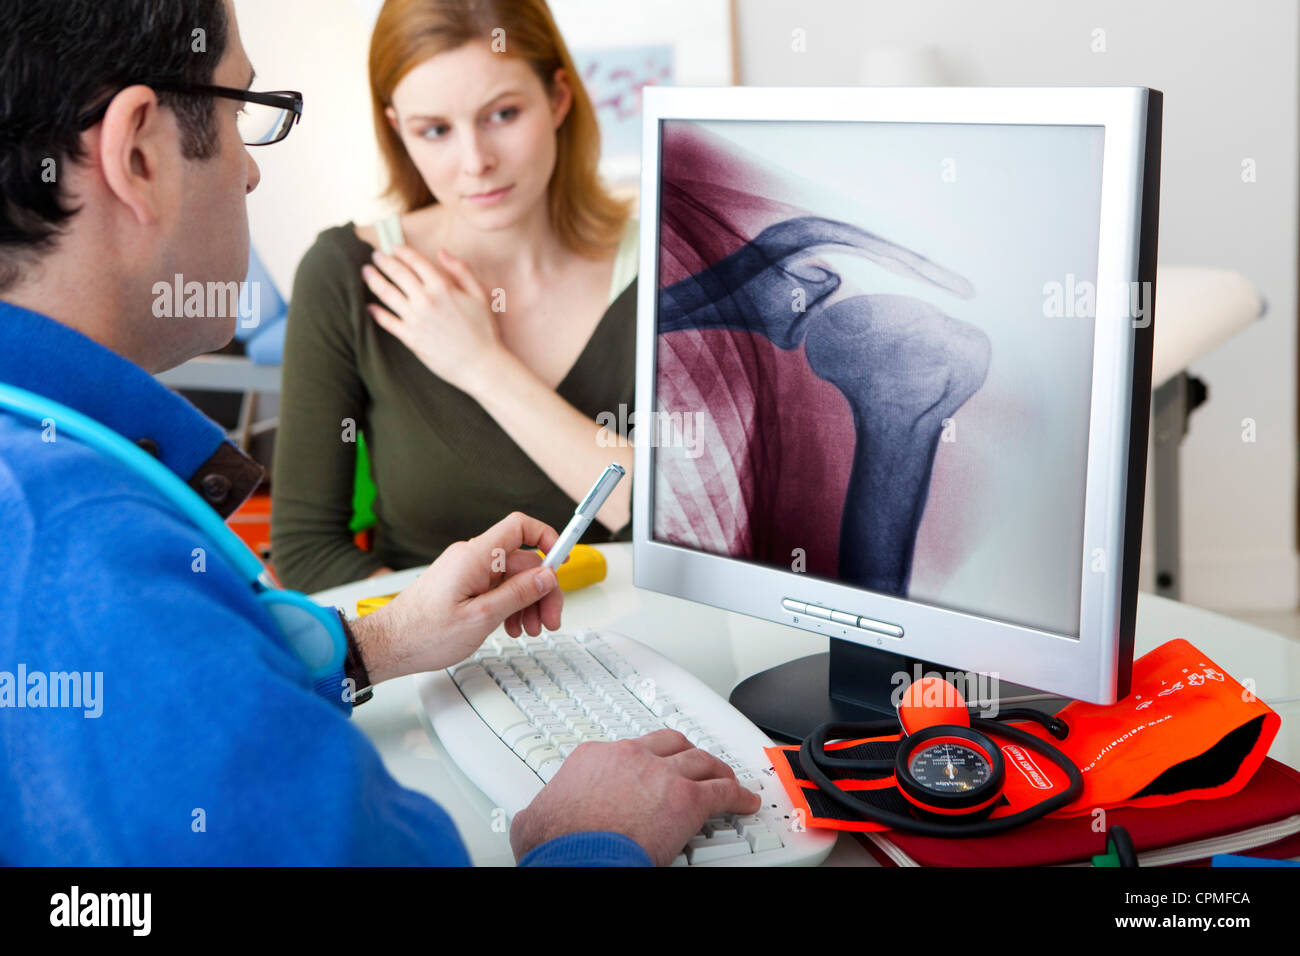 ORTHOPEDICS CONSULTATION WOMAN - Stock Image